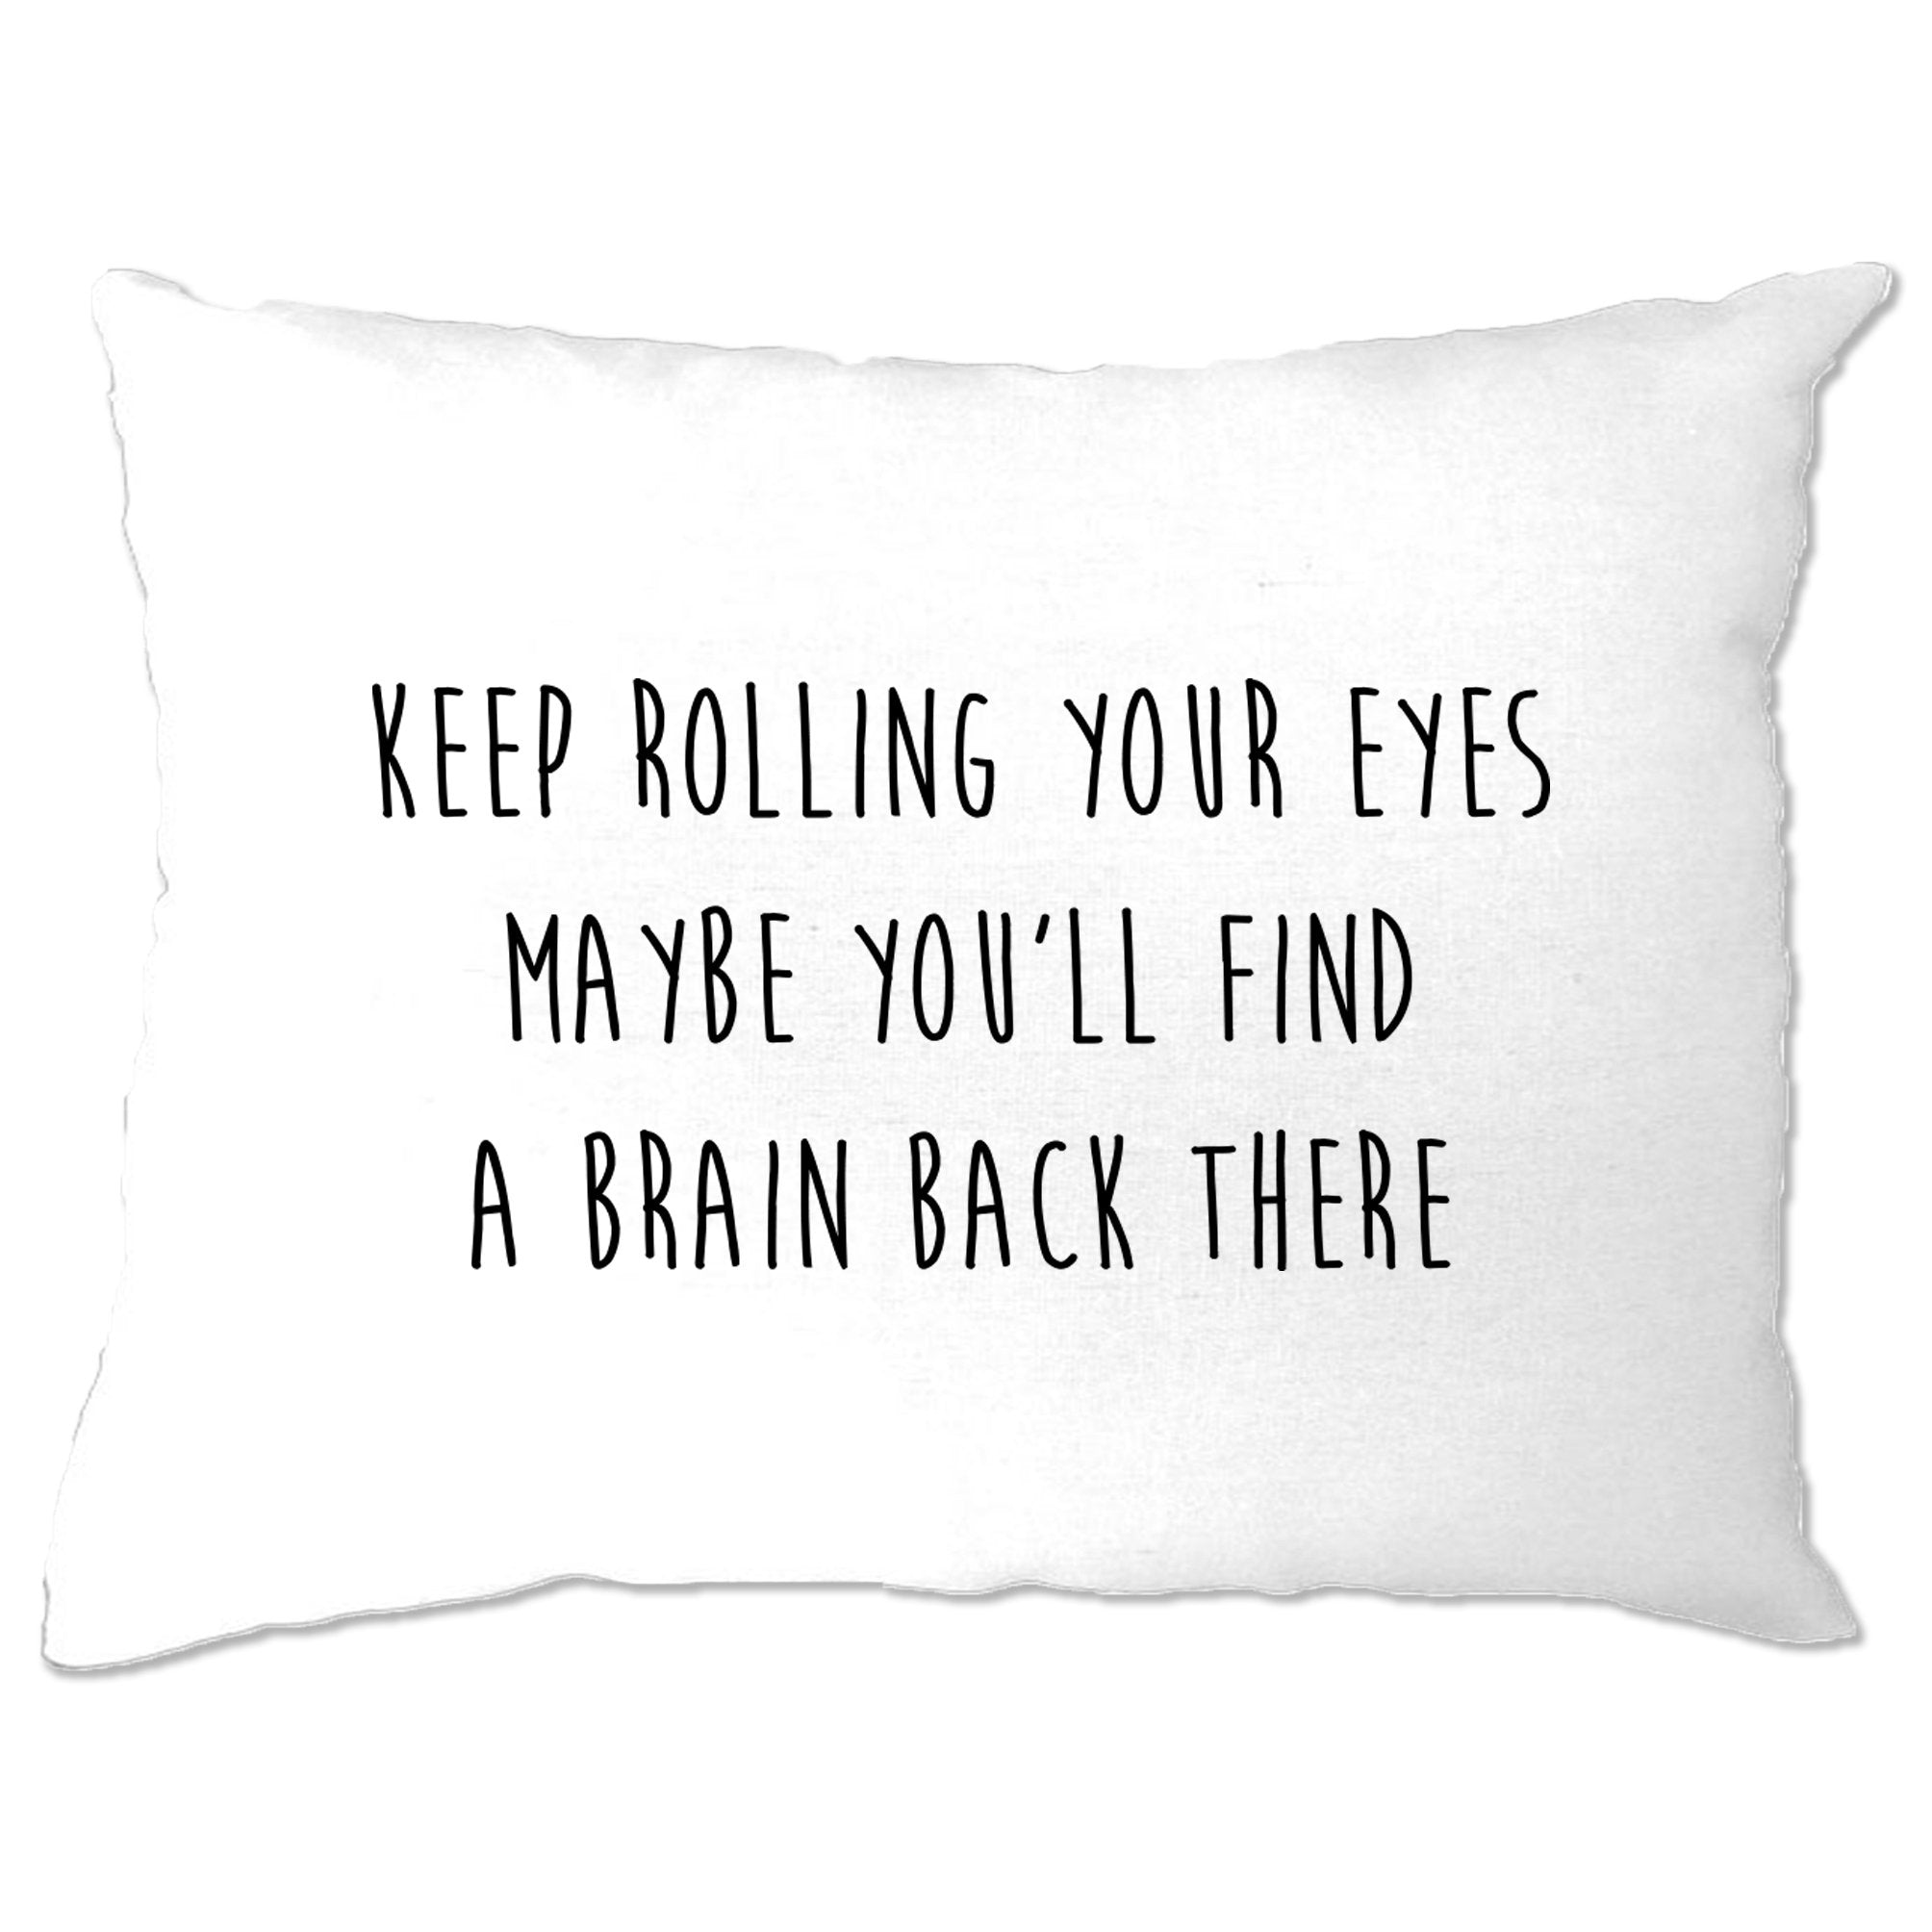 Novelty Pillow Case Keep Rolling Your Eyes Joke